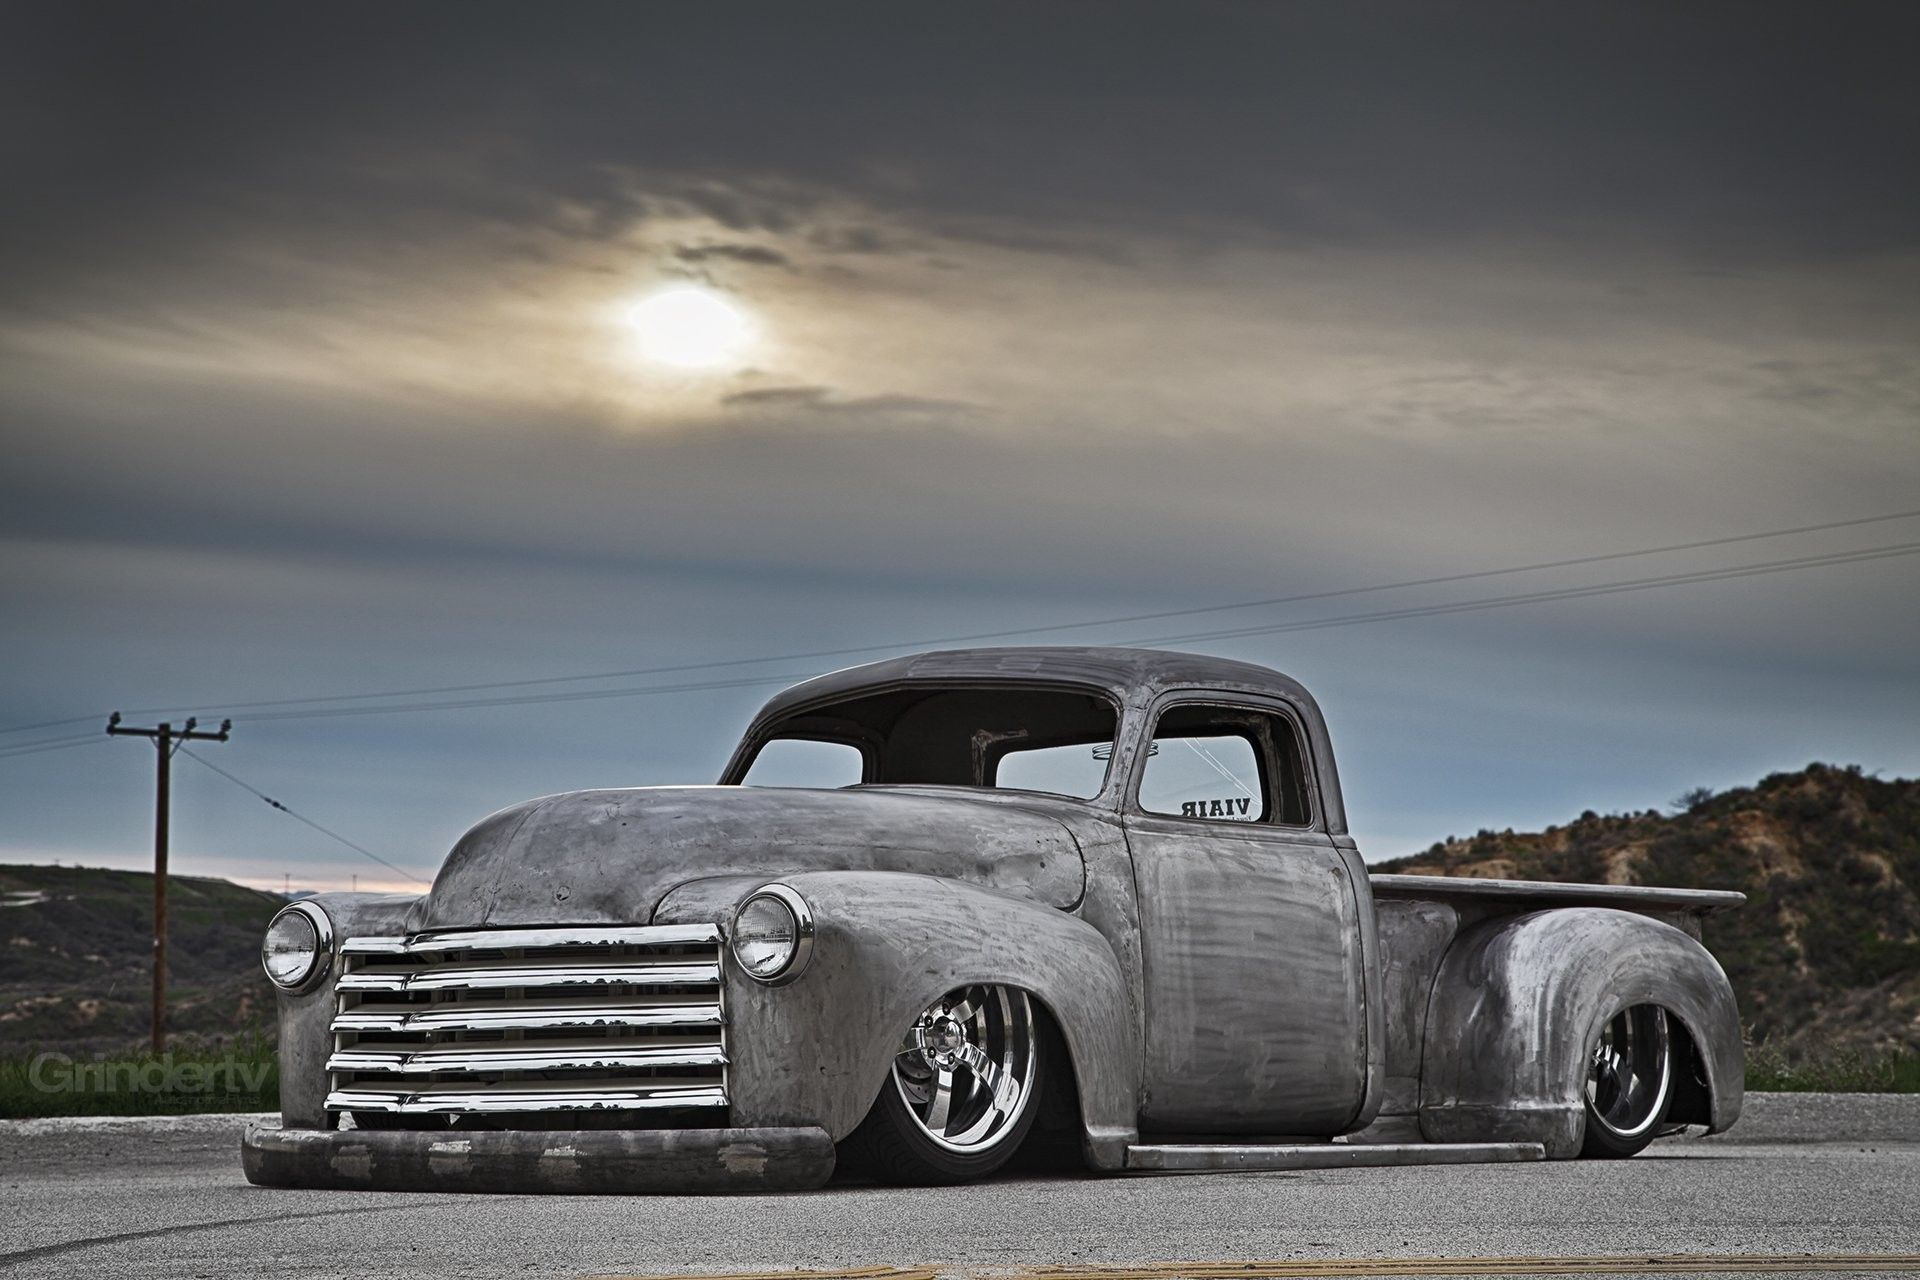 Large Classic Truck Wallpapers On Wallpaperdog